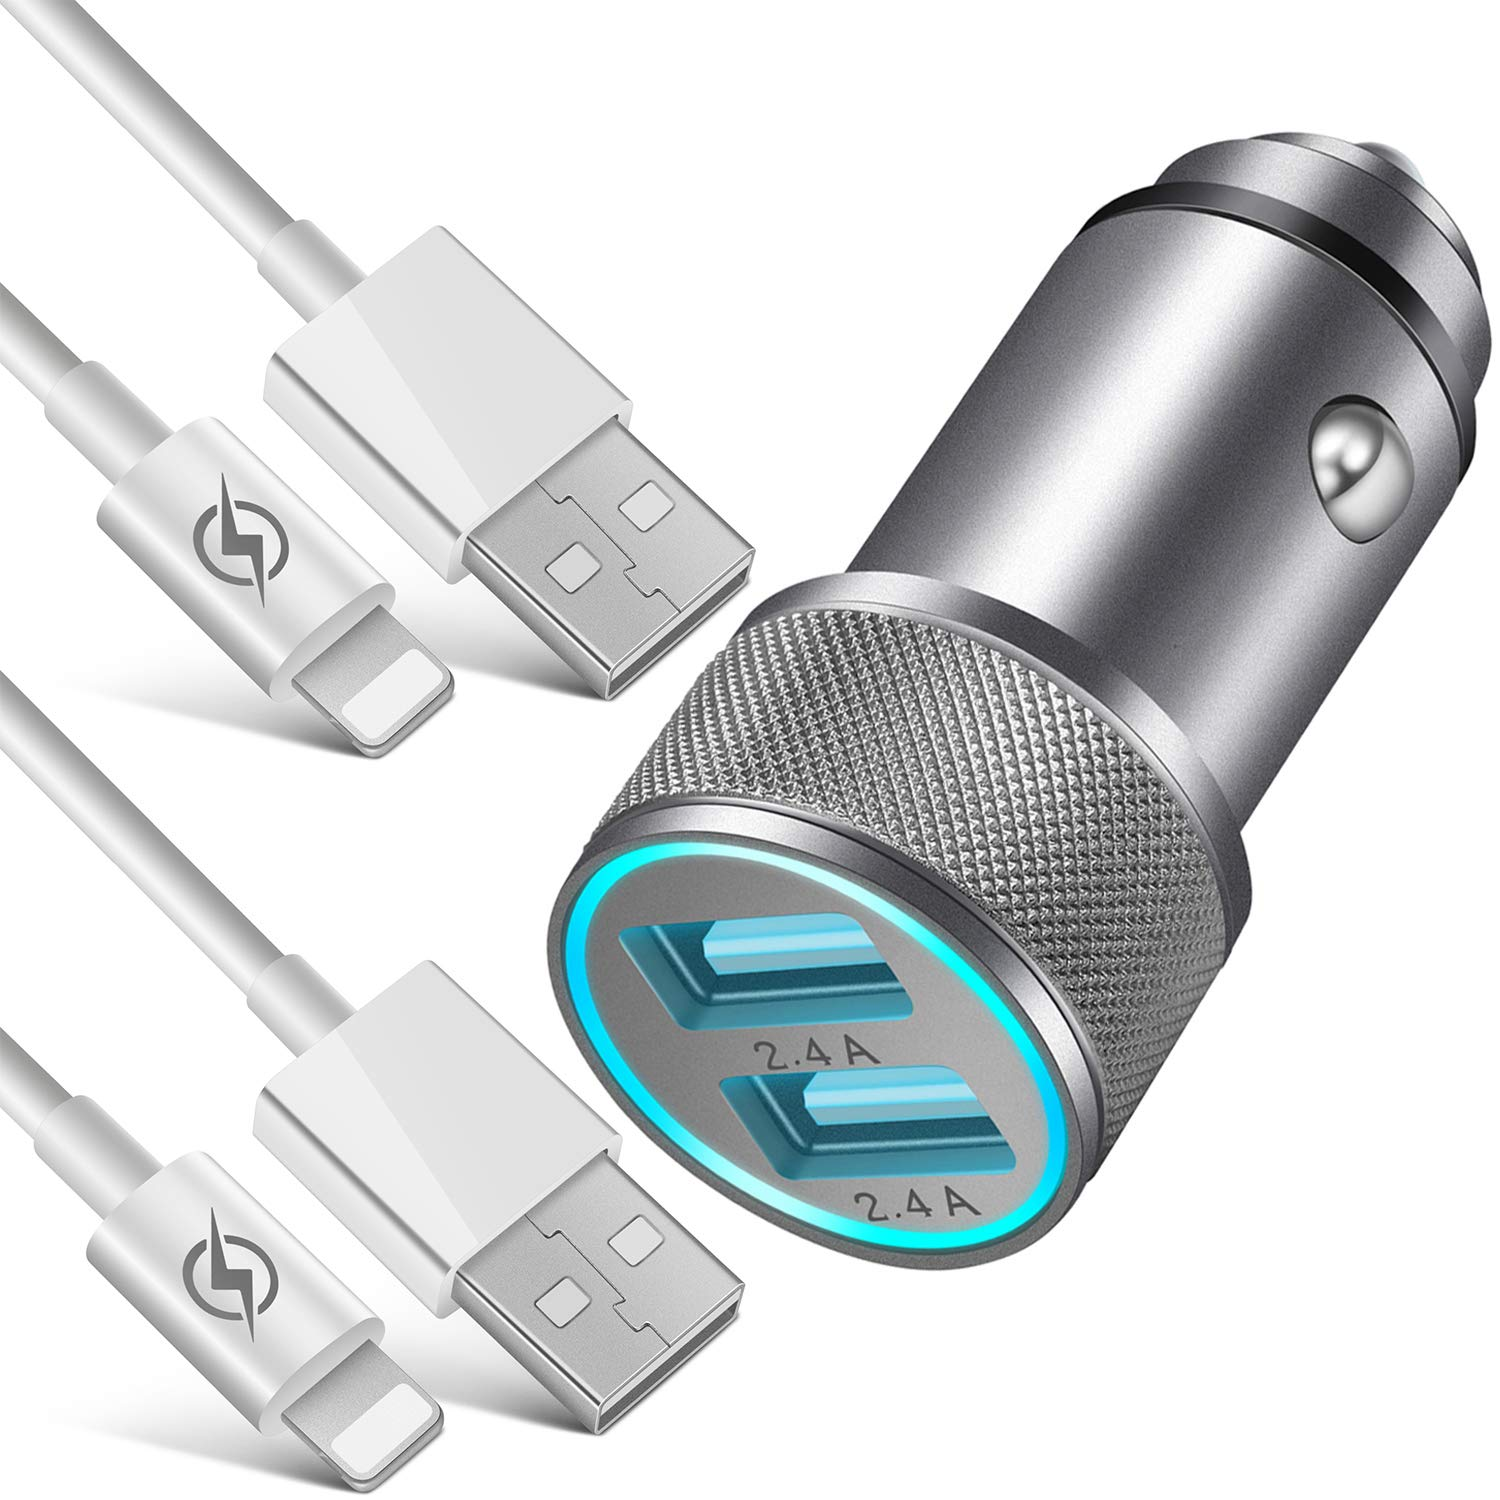 NNICE Car Charger, 2.4A AL-Alloy Dual USB Car Charger Adapter with 2-Pack 3 FT Charging Cable Sync Cord Compatible with iPhone 11 Pro Max/11 Pro/11/Xs/XR/X/8/7/6 Plus SE 5S, iPad Pro Air Mini and More by NNICE